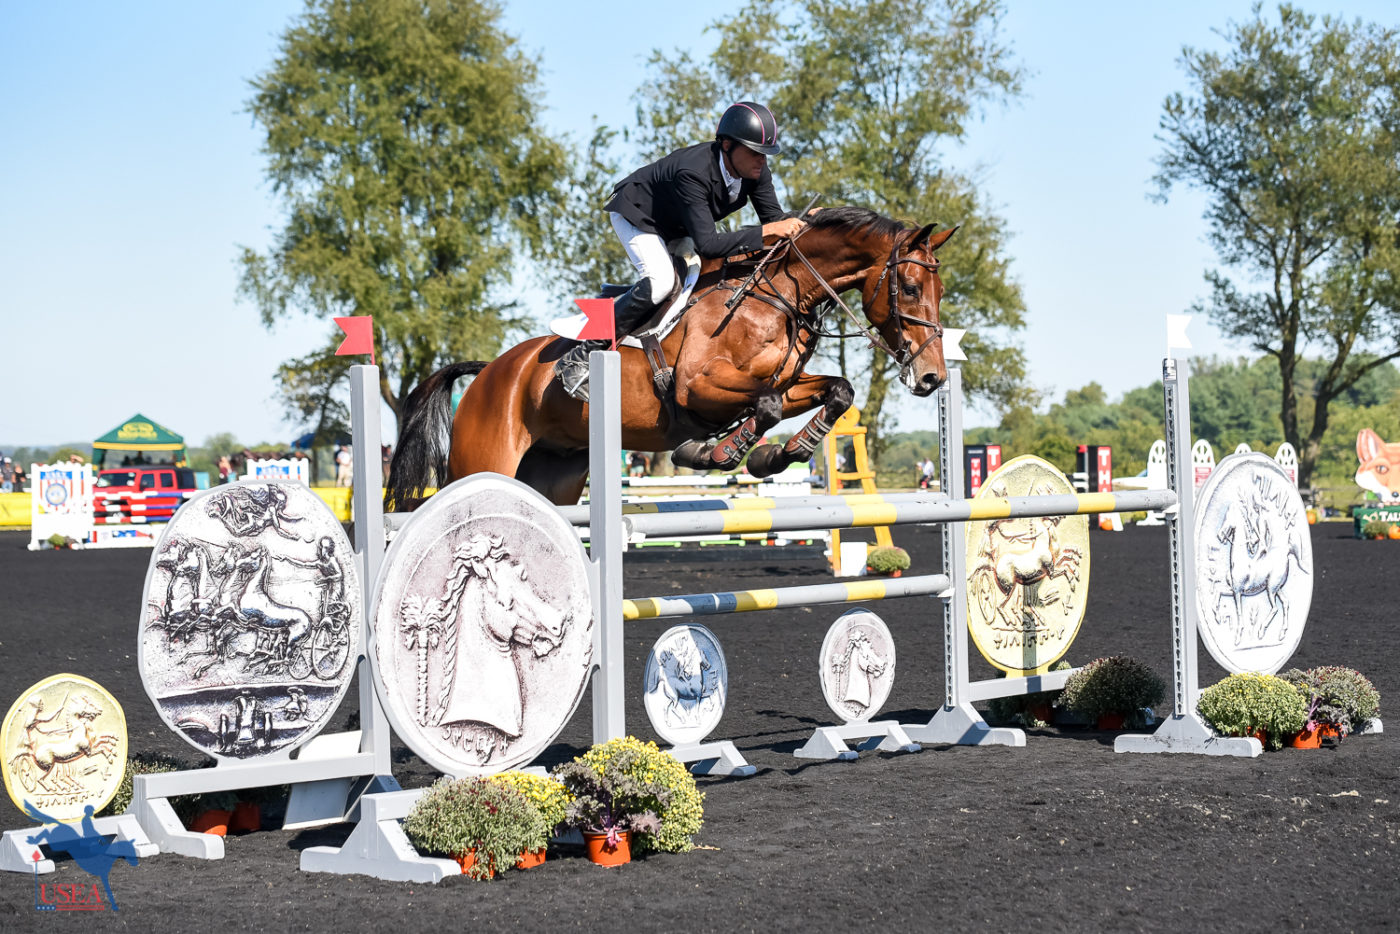 7th - Boyd Martin and Fernhill Singapore - 32.1